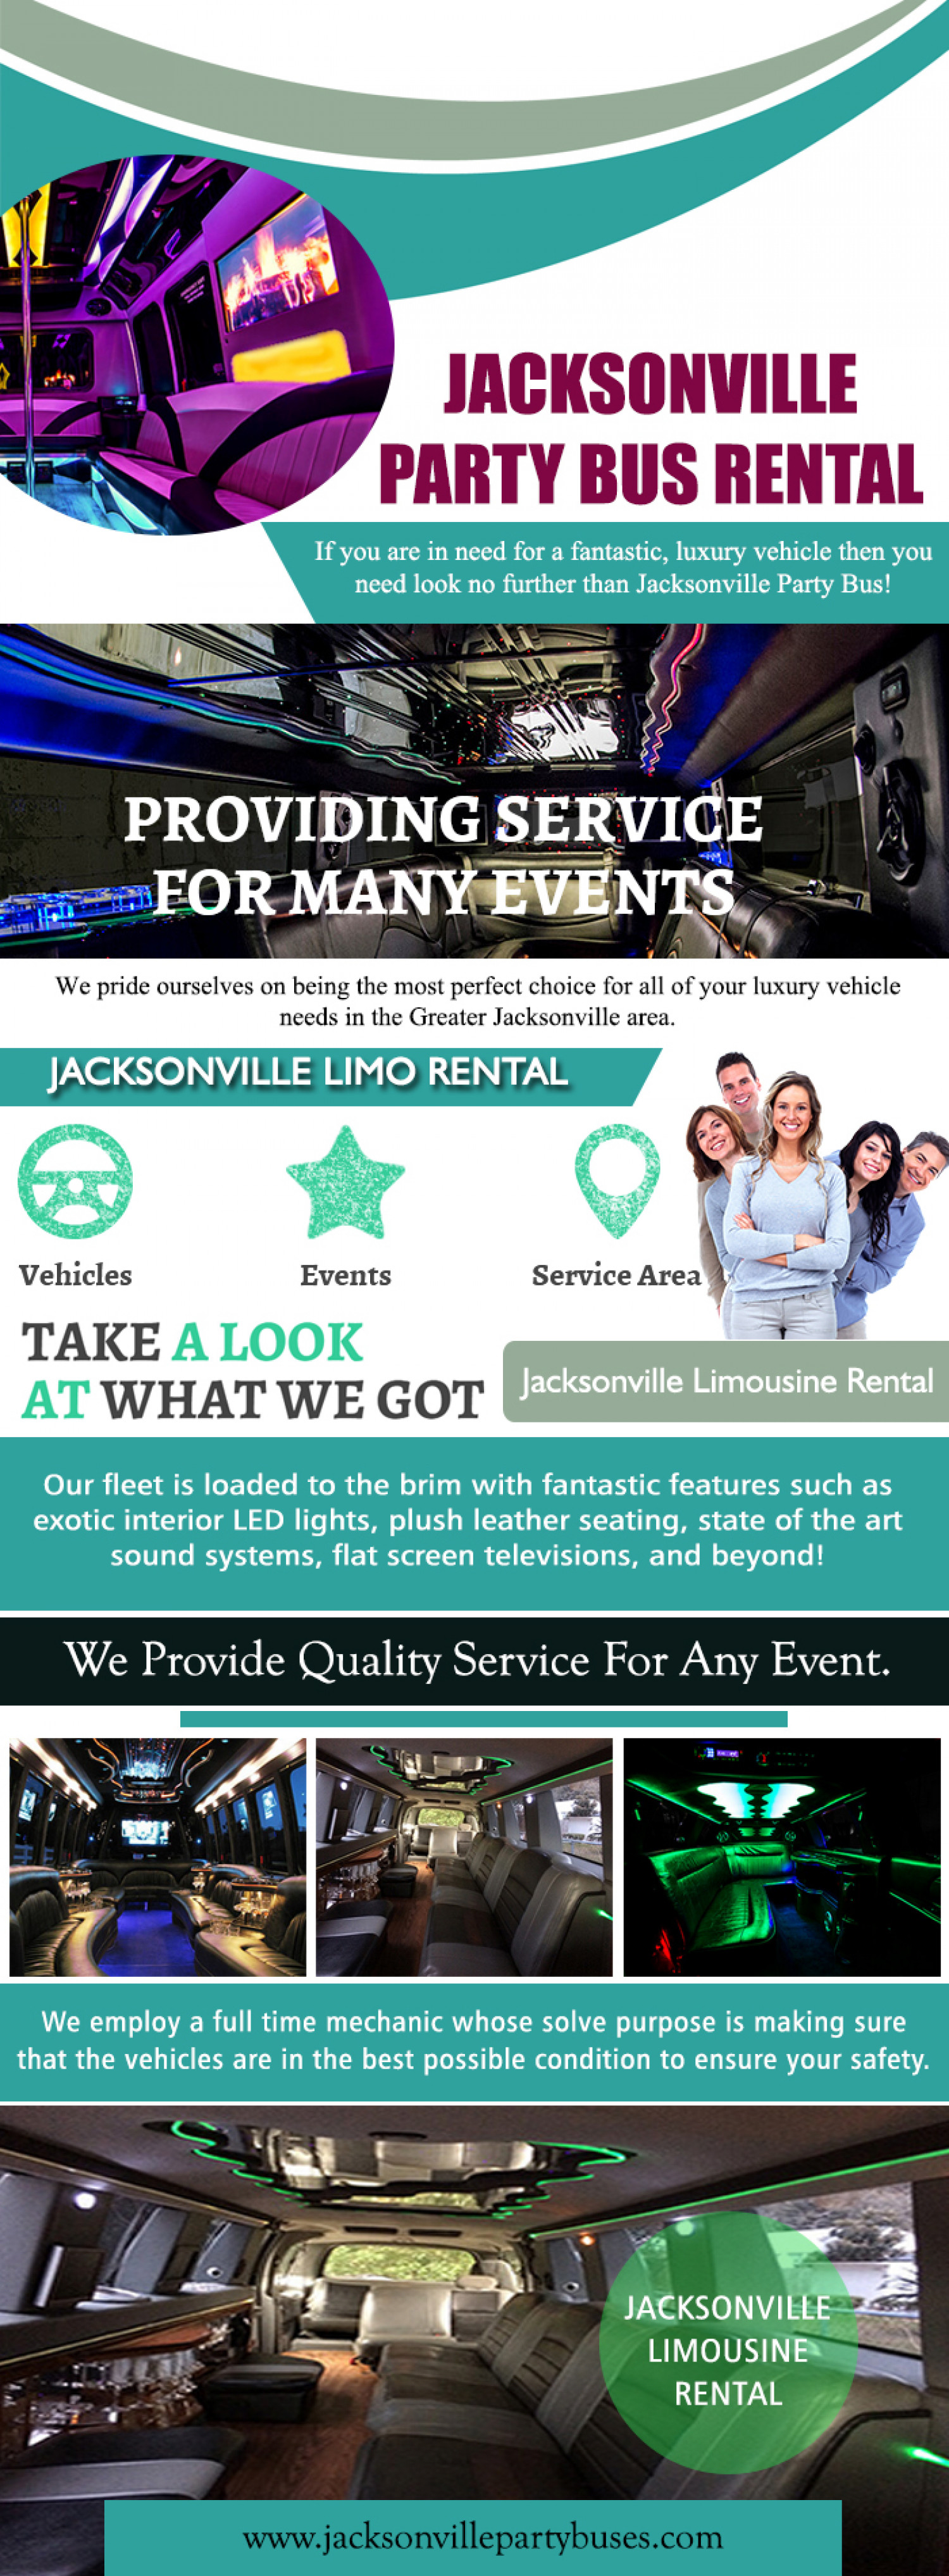 Jacksonville Limo Rental | Call (904) 601-0904 Infographic